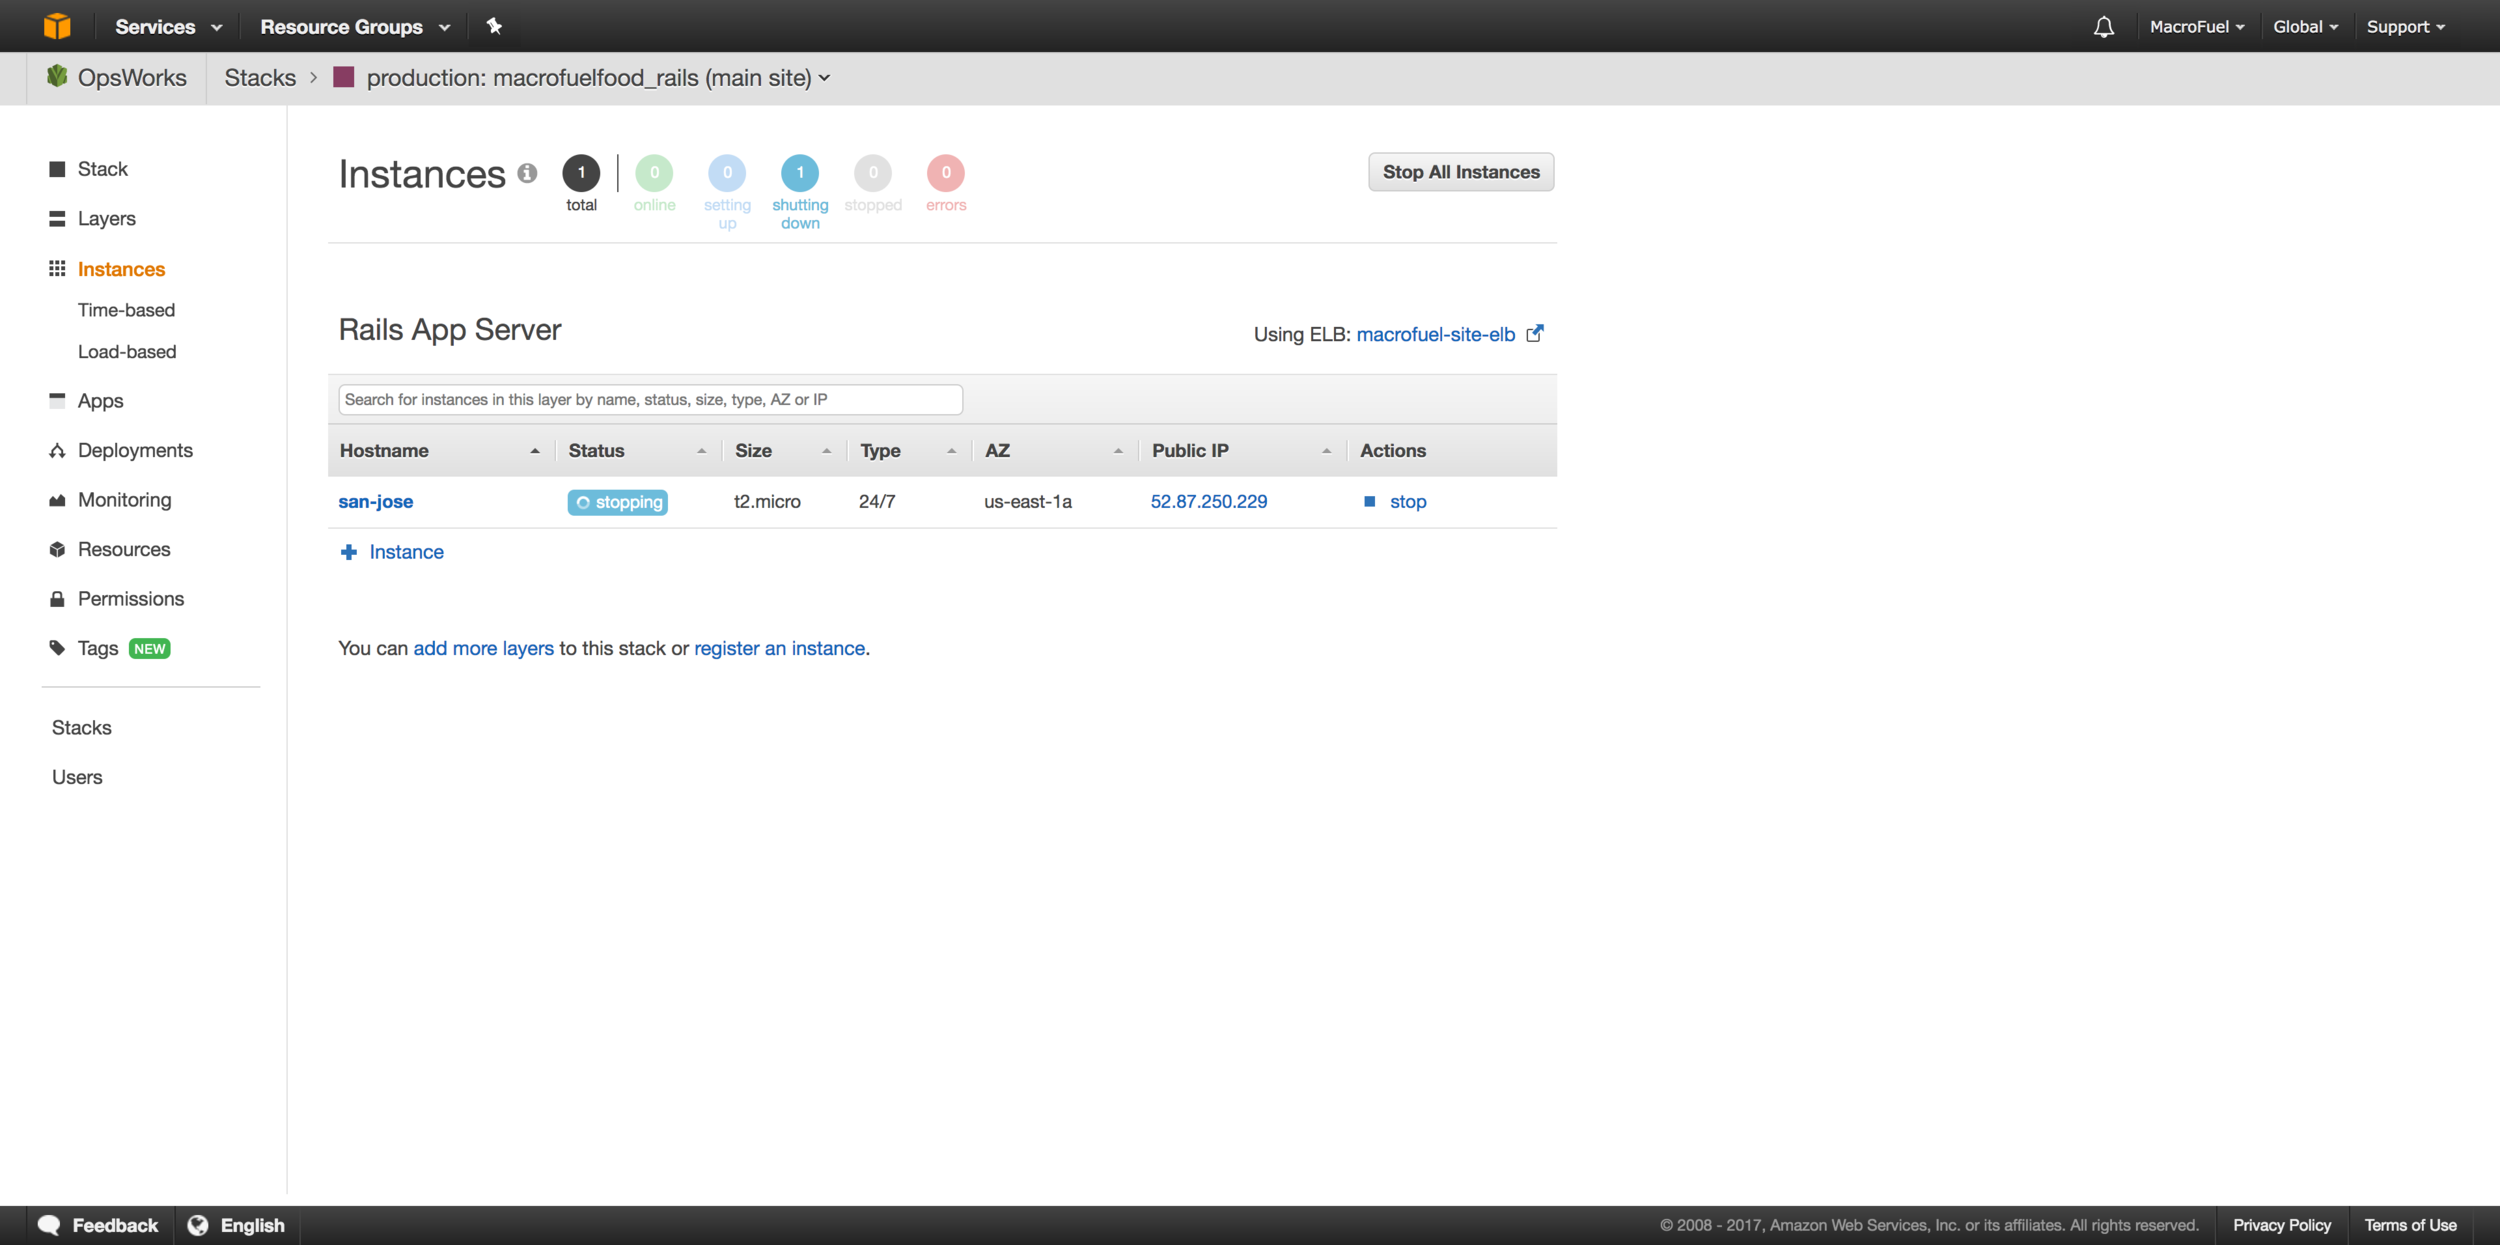 screencapture-console-aws-amazon-opsworks-home-1497410247081.png